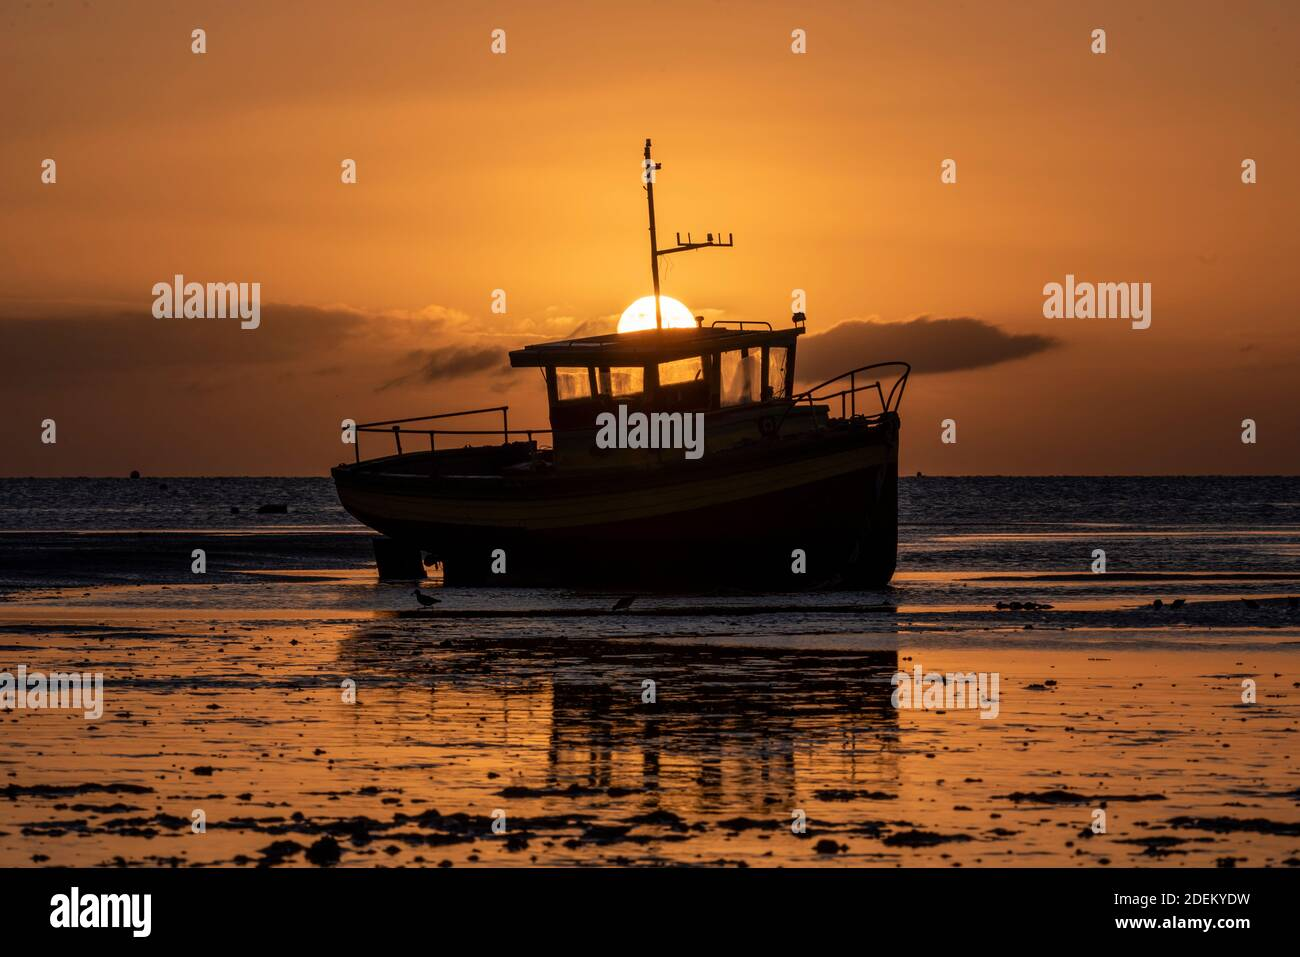 southend-on-sea-essex-uk-1st-dec-2020-the-first-day-of-december-has-dawned-bright-but-cold-with-the-sun-rising-from-behind-a-colourful-boat-moored-off-southend-on-sea-at-low-tide-vessel-sitting-on-mud-with-orange-reflection-2DEKYDW.jpg